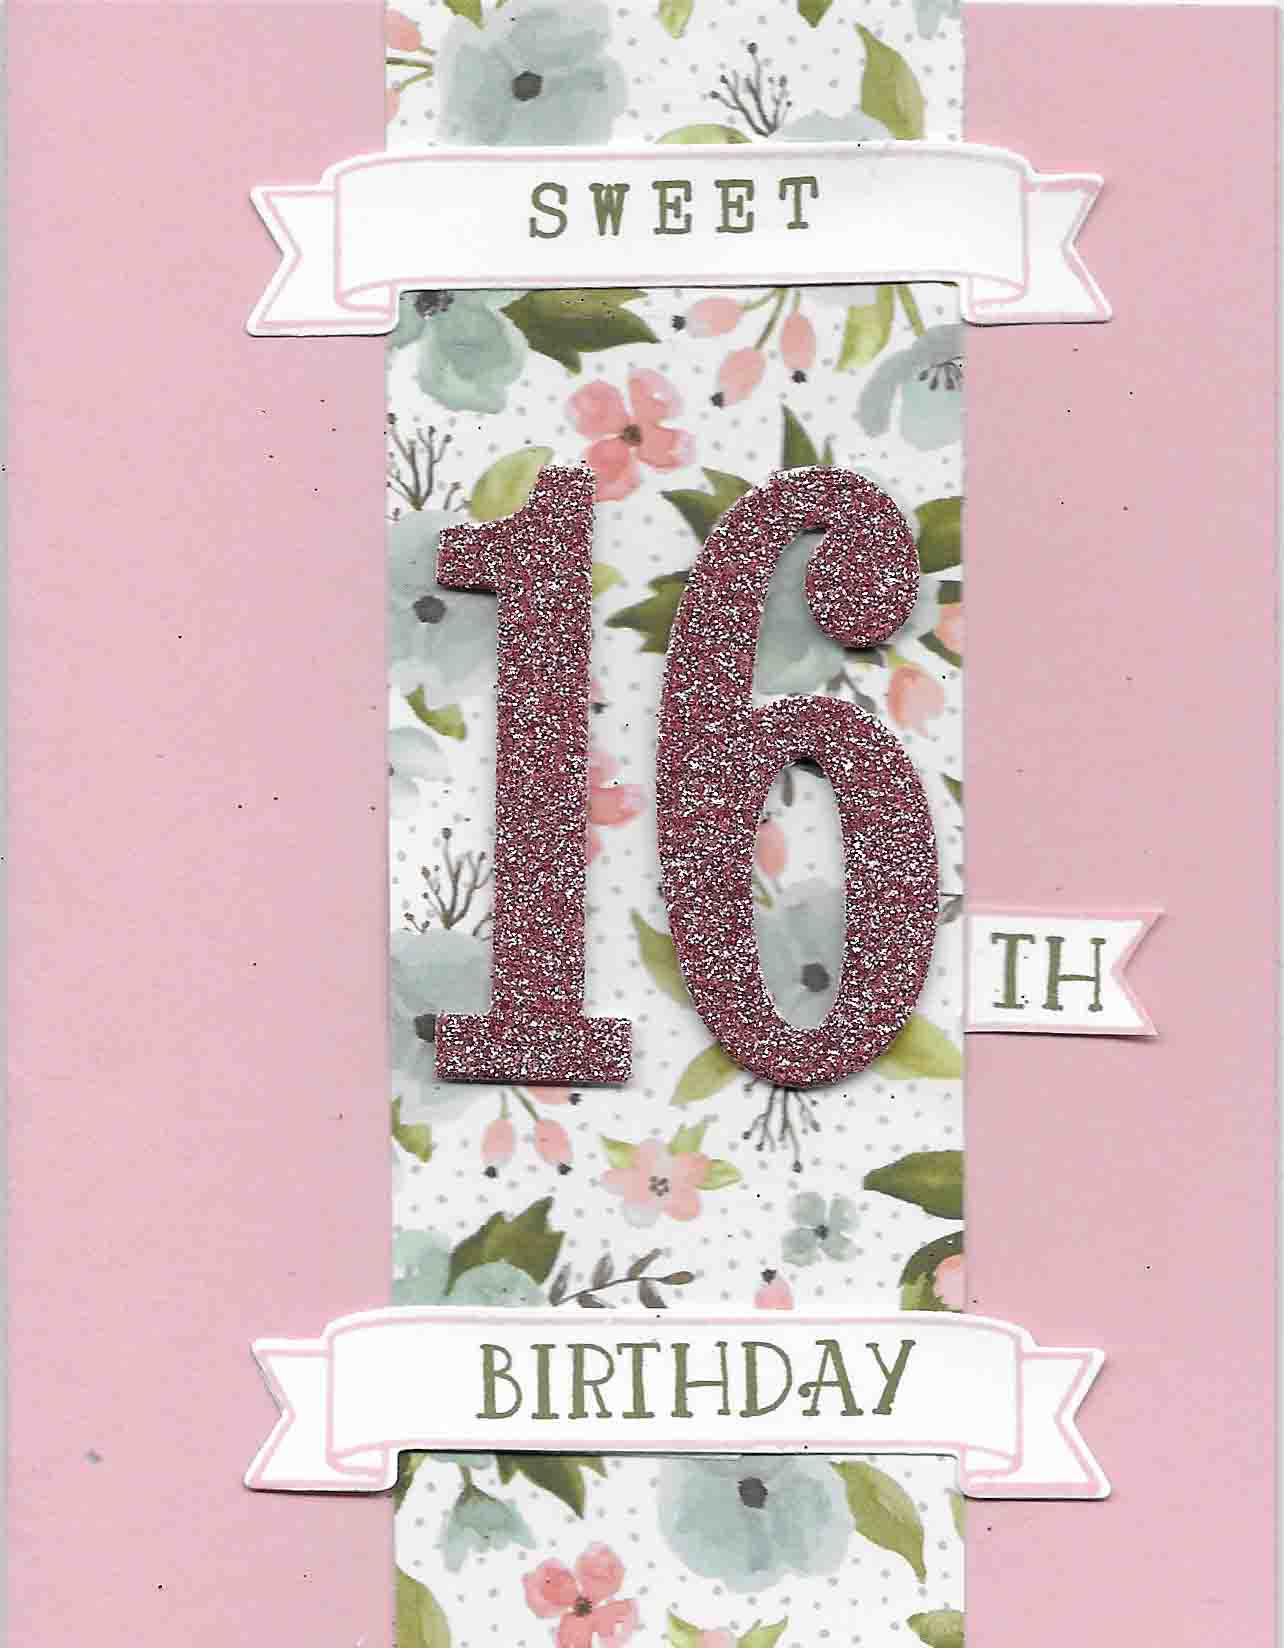 Sweet 16 Birthday Card usinngNumber of Years stamp set and Large Numbers Framelits Dies